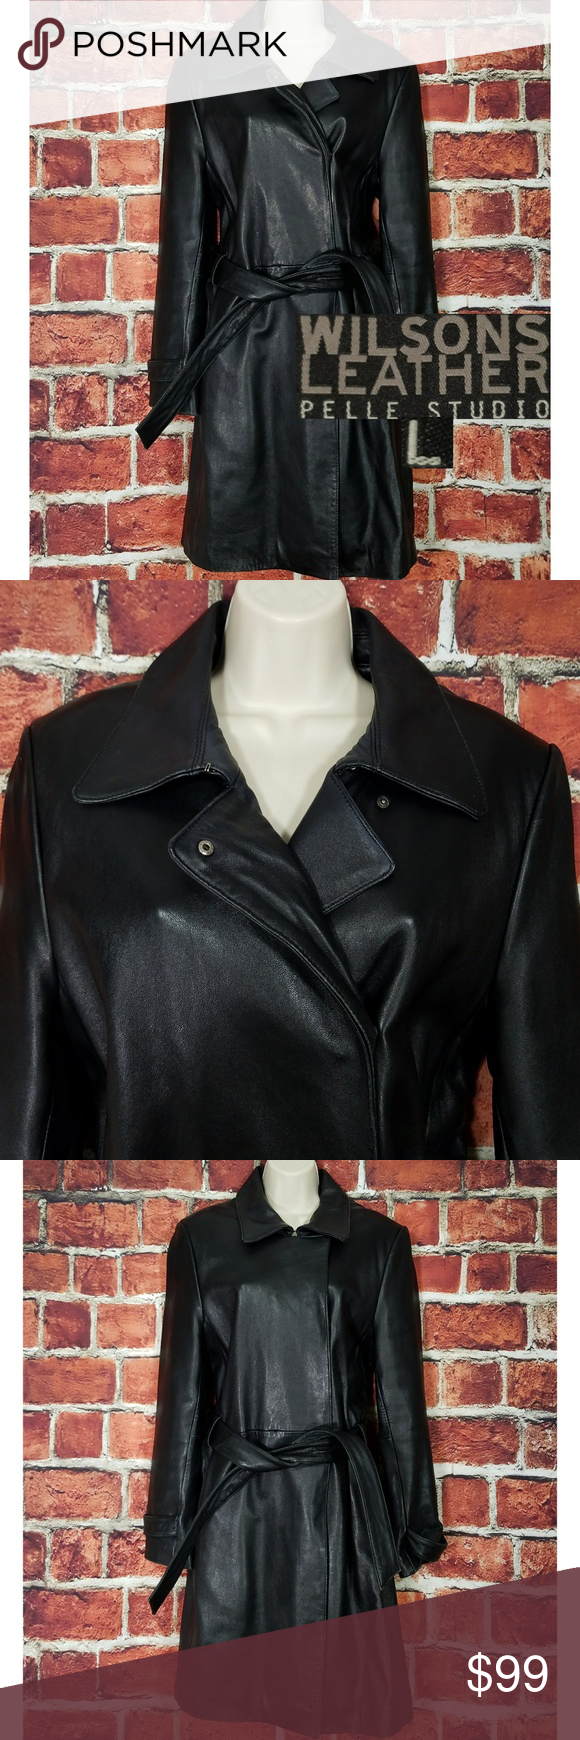 Wilsons Leather Trench Coat Women Sz L Wilsons Leather